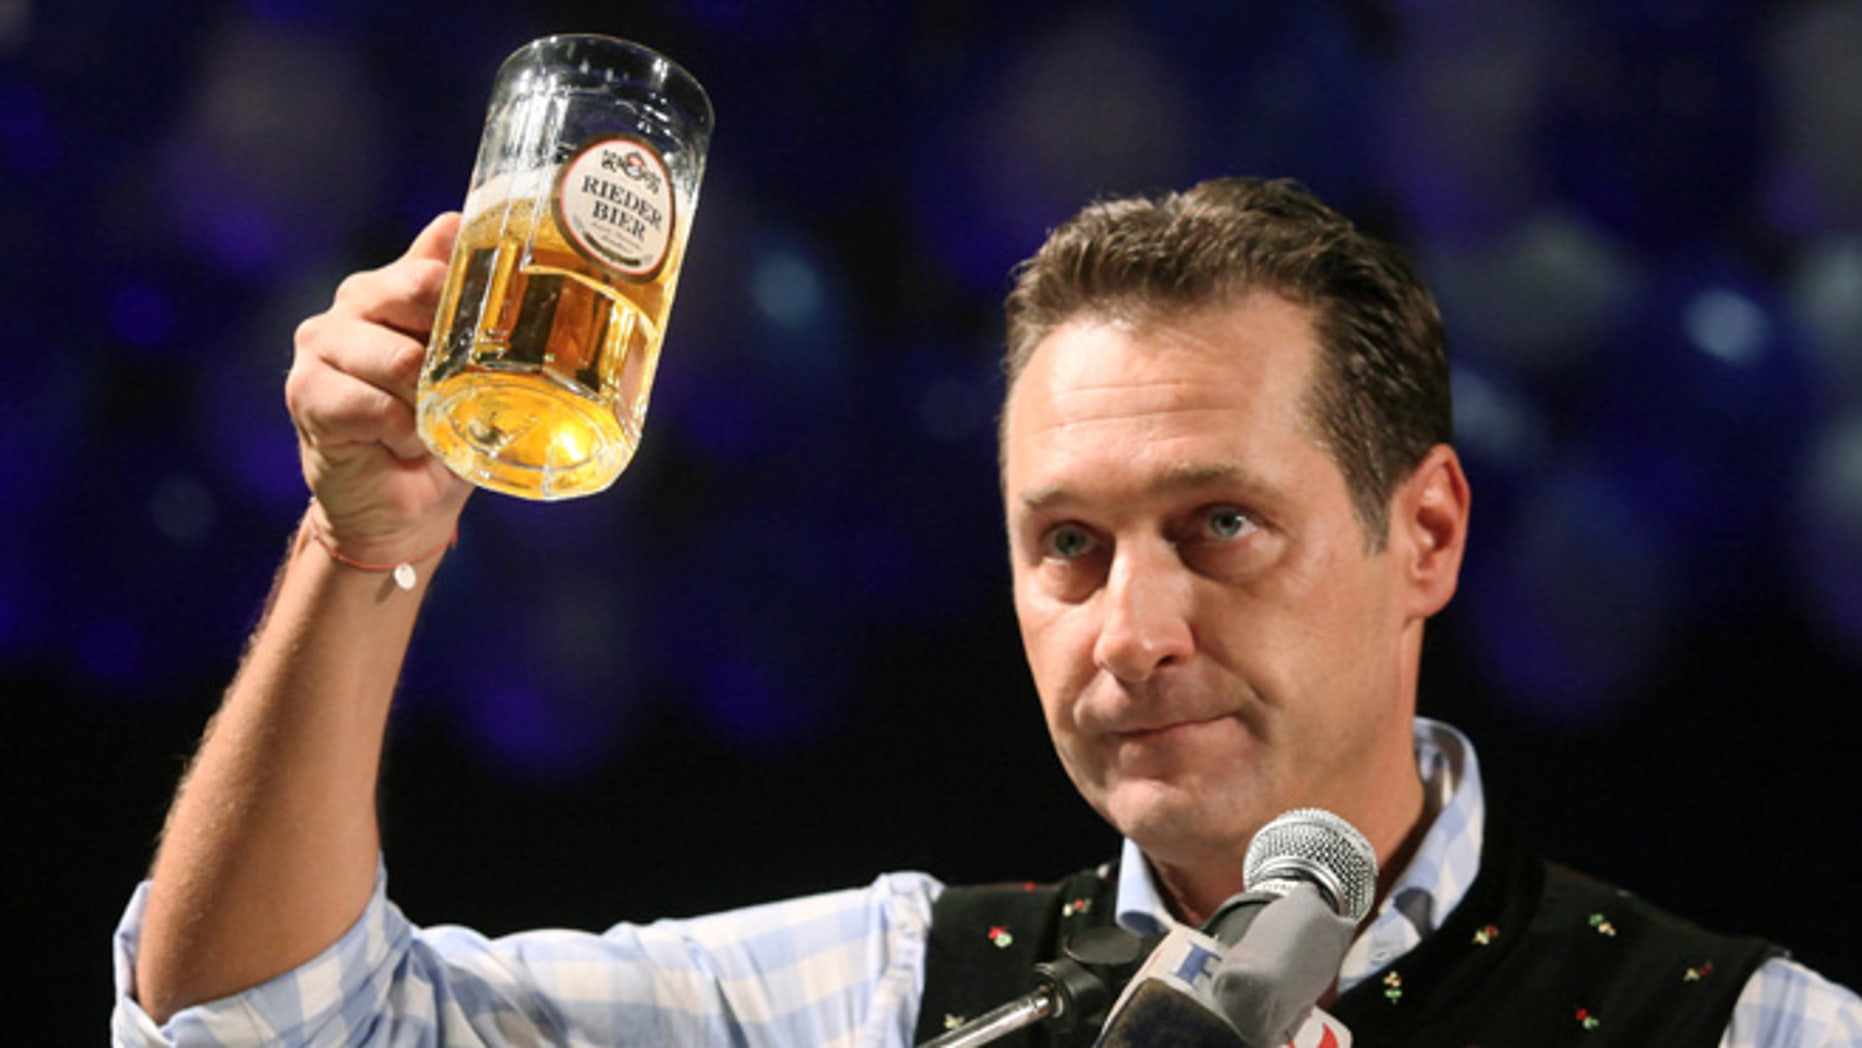 Feb. 22, 2012: In this file photo head of the Austrian right-wing Freedom Party Heinz-Christian Strache lifts a glass of beer during his traditional Ash Wednesday speech in Ried, Austria.